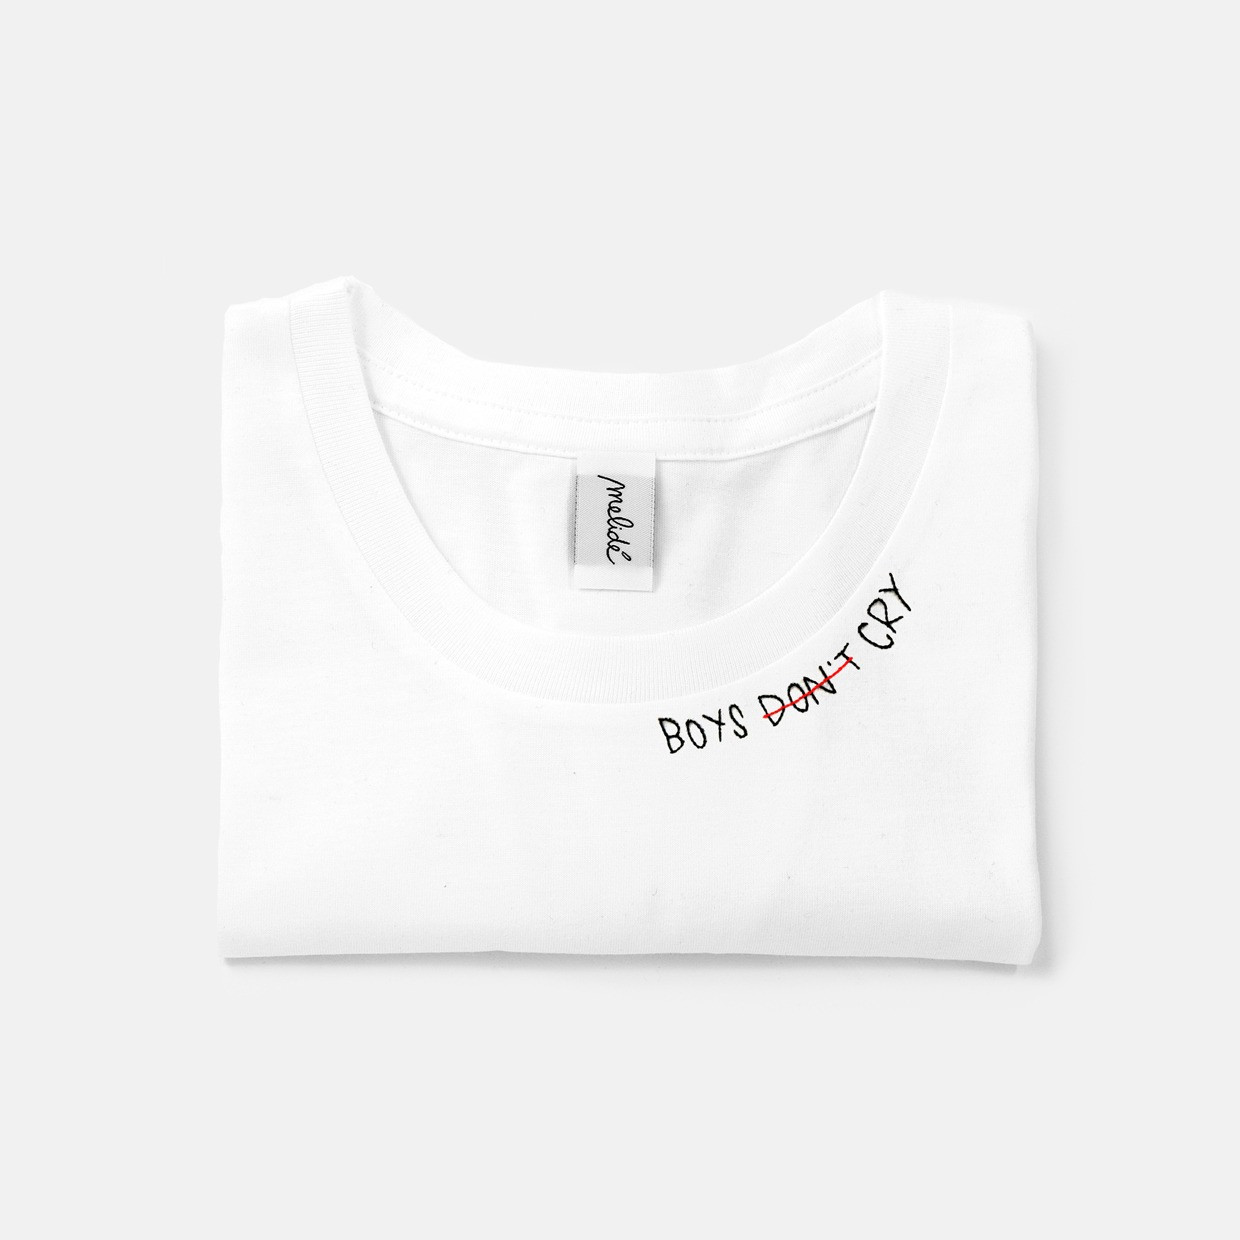 The BOYS DON'T CRY slim fit tee - melidé X Florencia